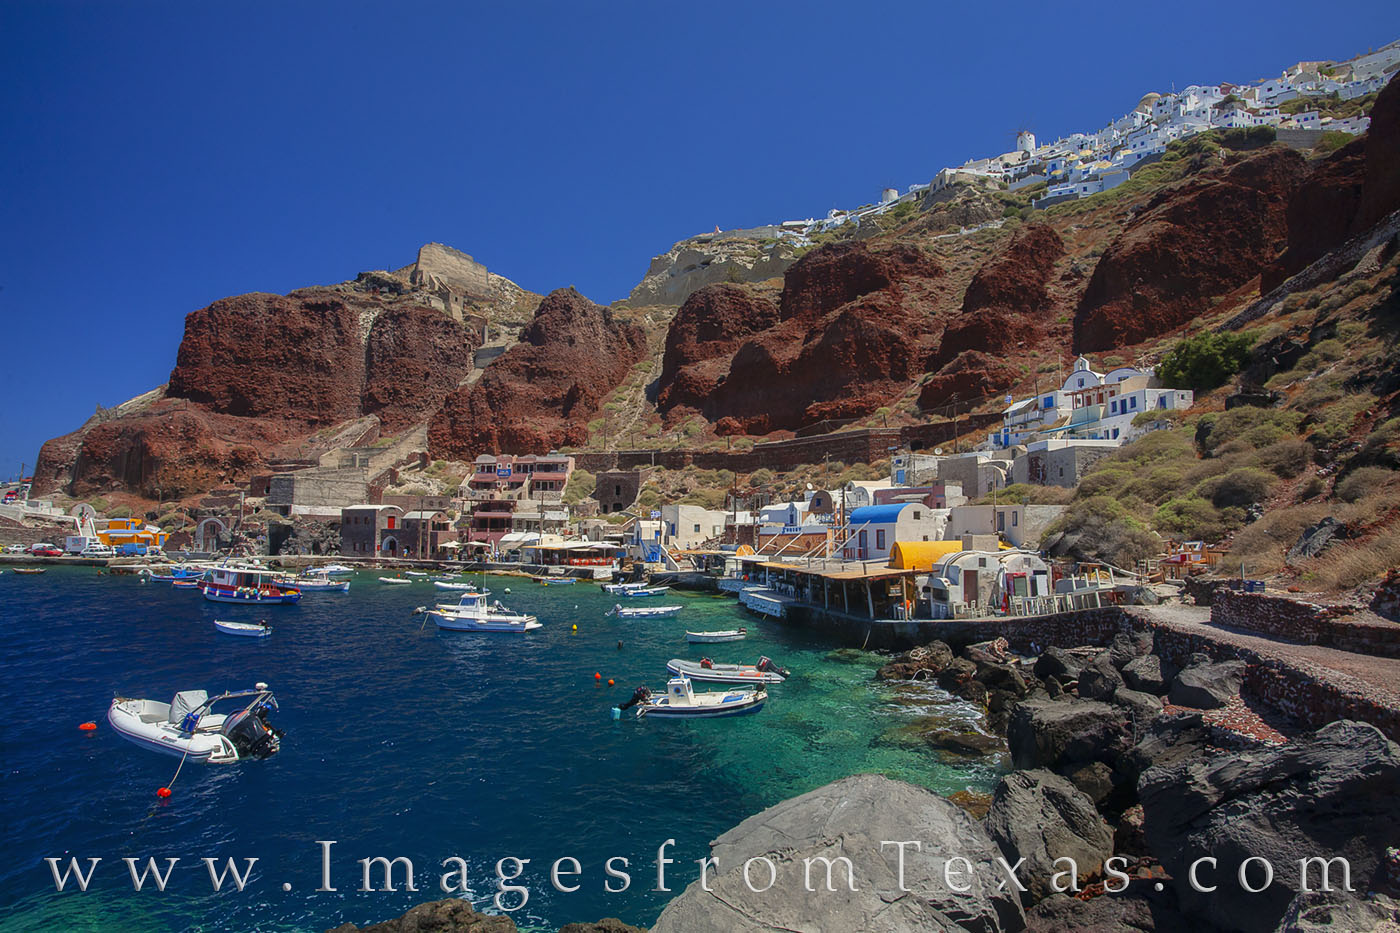 santorini, oia, ormos armeni, amoudi bay, greek islands, greece, aegean sea, islands, ocean, travels, photo